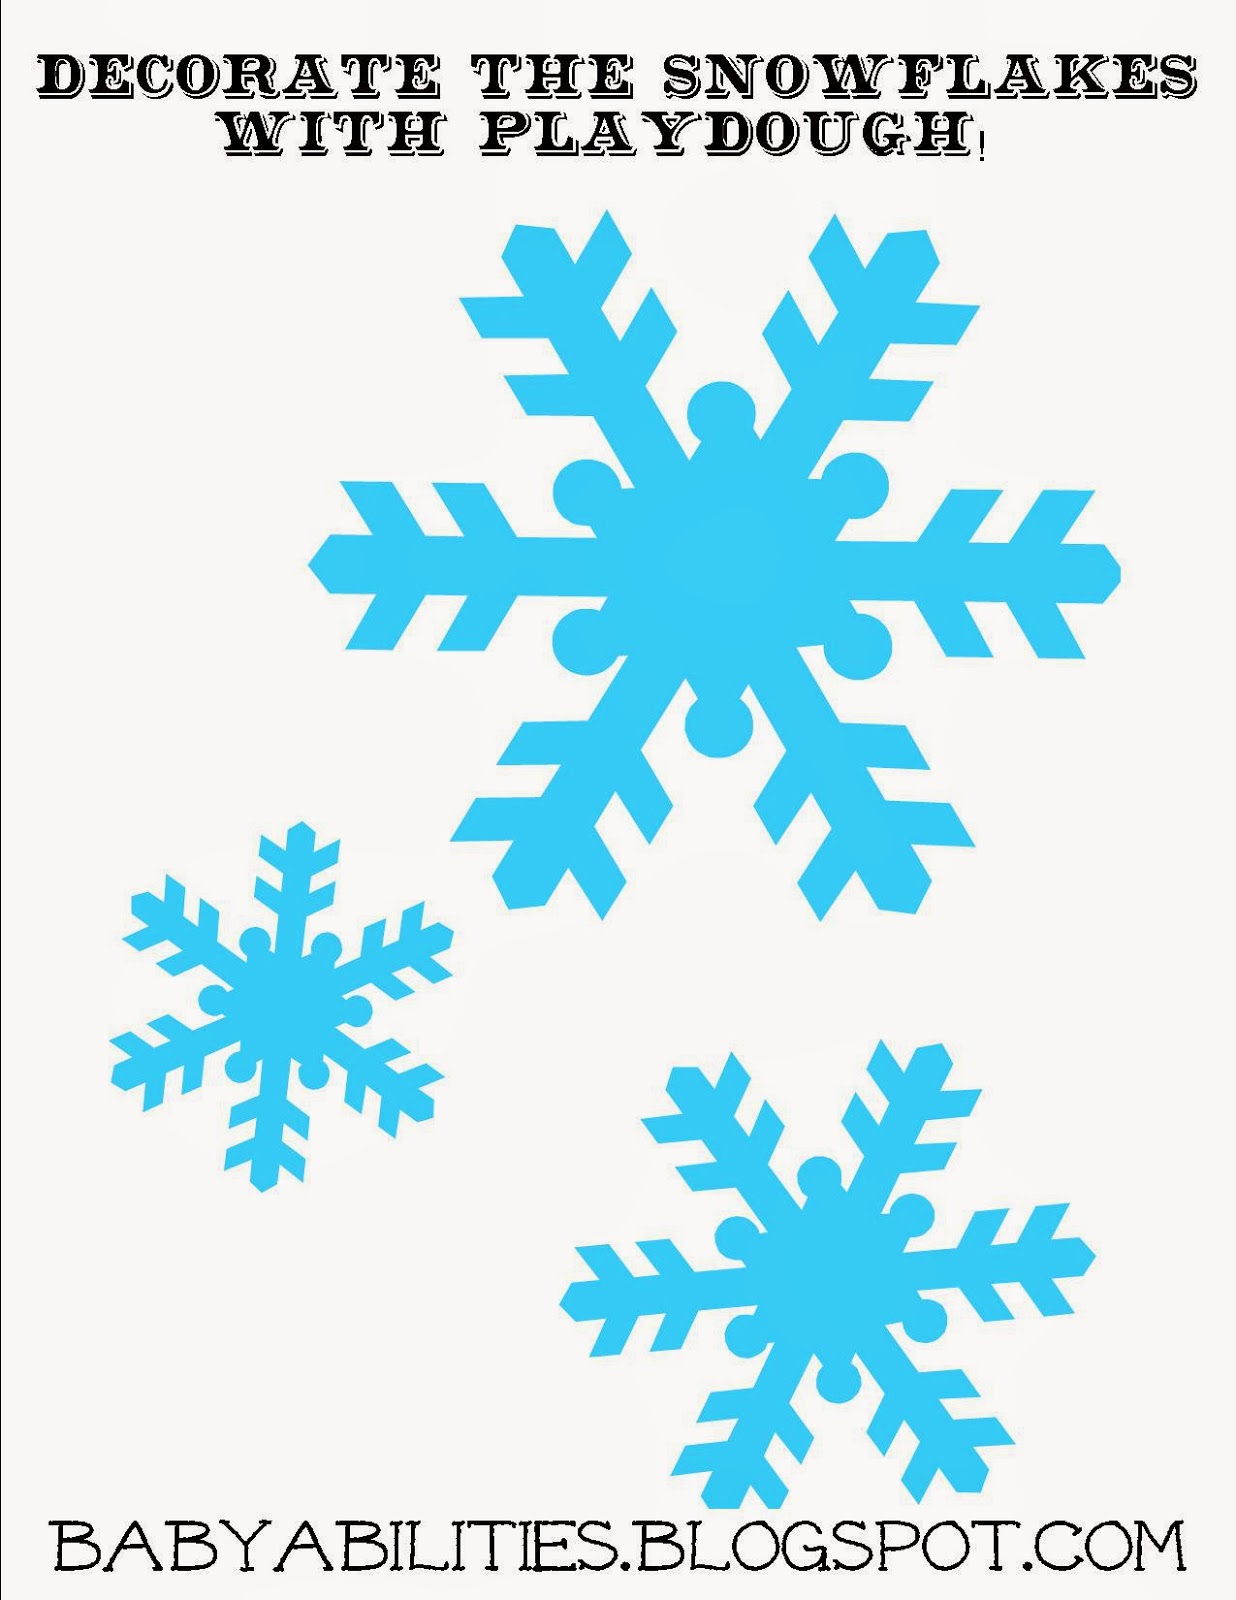 Snow Flake Worksheet | Printable Worksheets and Activities for